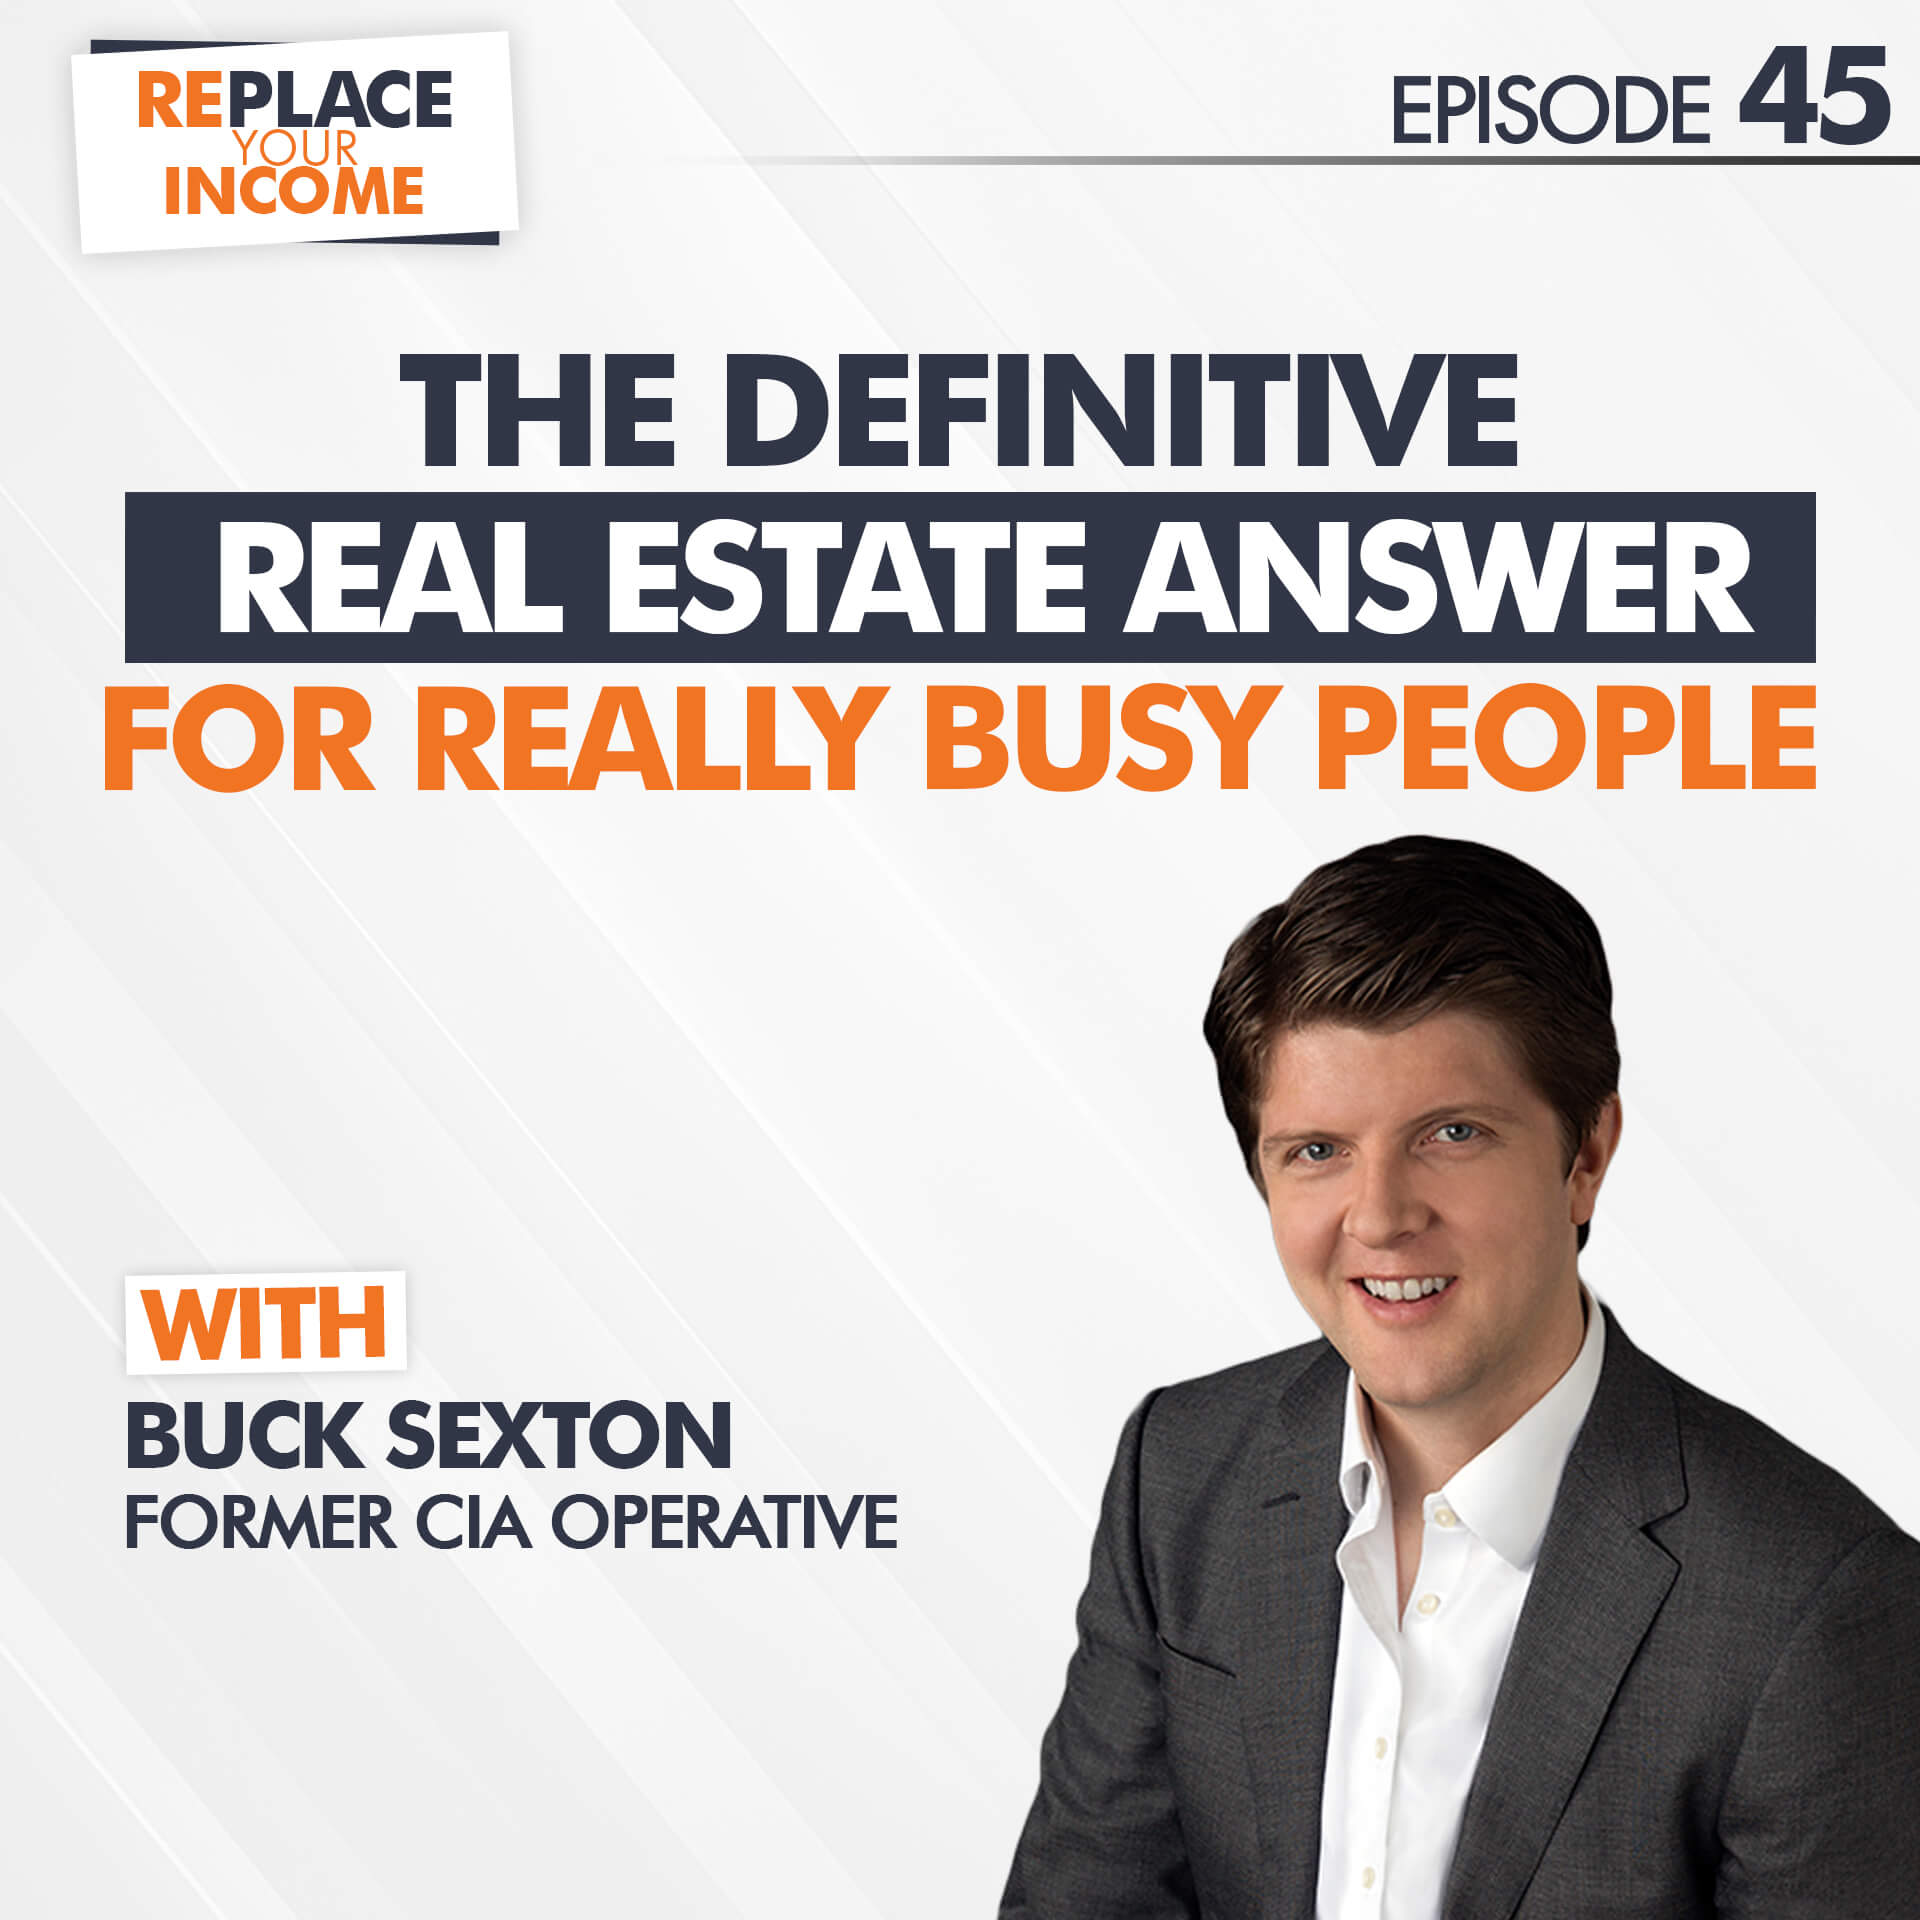 The Definitive Real Estate Answer For Really Busy People